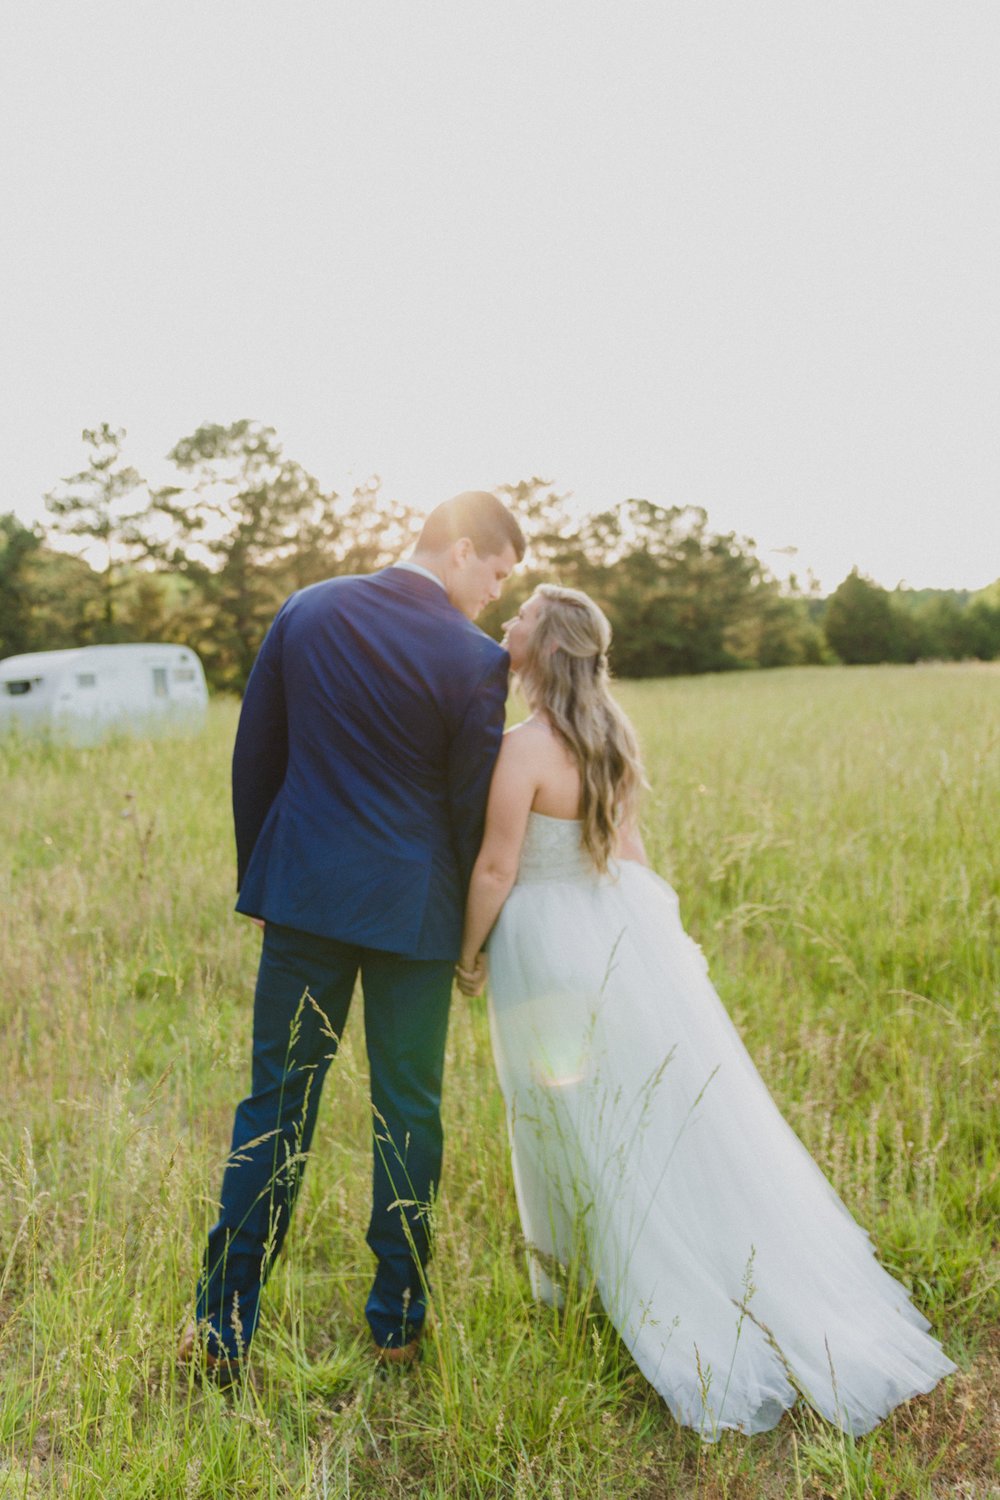 Daley+Matt's  Rustic Barn Wedding in Lagrange, Georgia by Ayeris Weddings May 2018-40.jpg